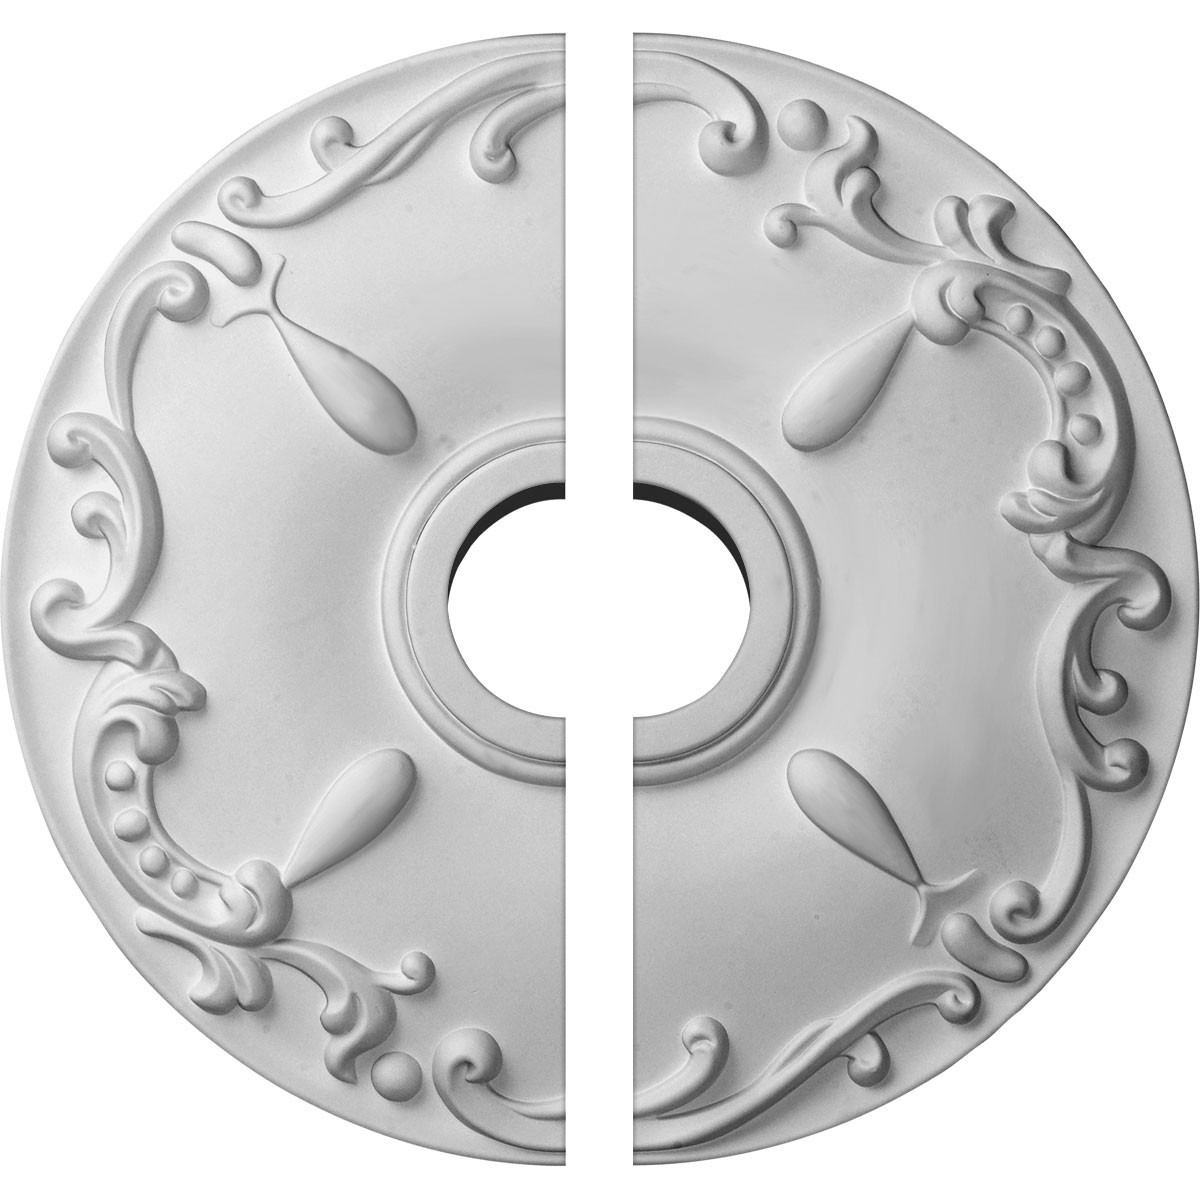 """EM-CM18KE2 - 18""""OD x 3 1/2""""ID x 1 1/4""""P Kent Ceiling Medallion, Two Piece (Fits Canopies up to 5"""")"""